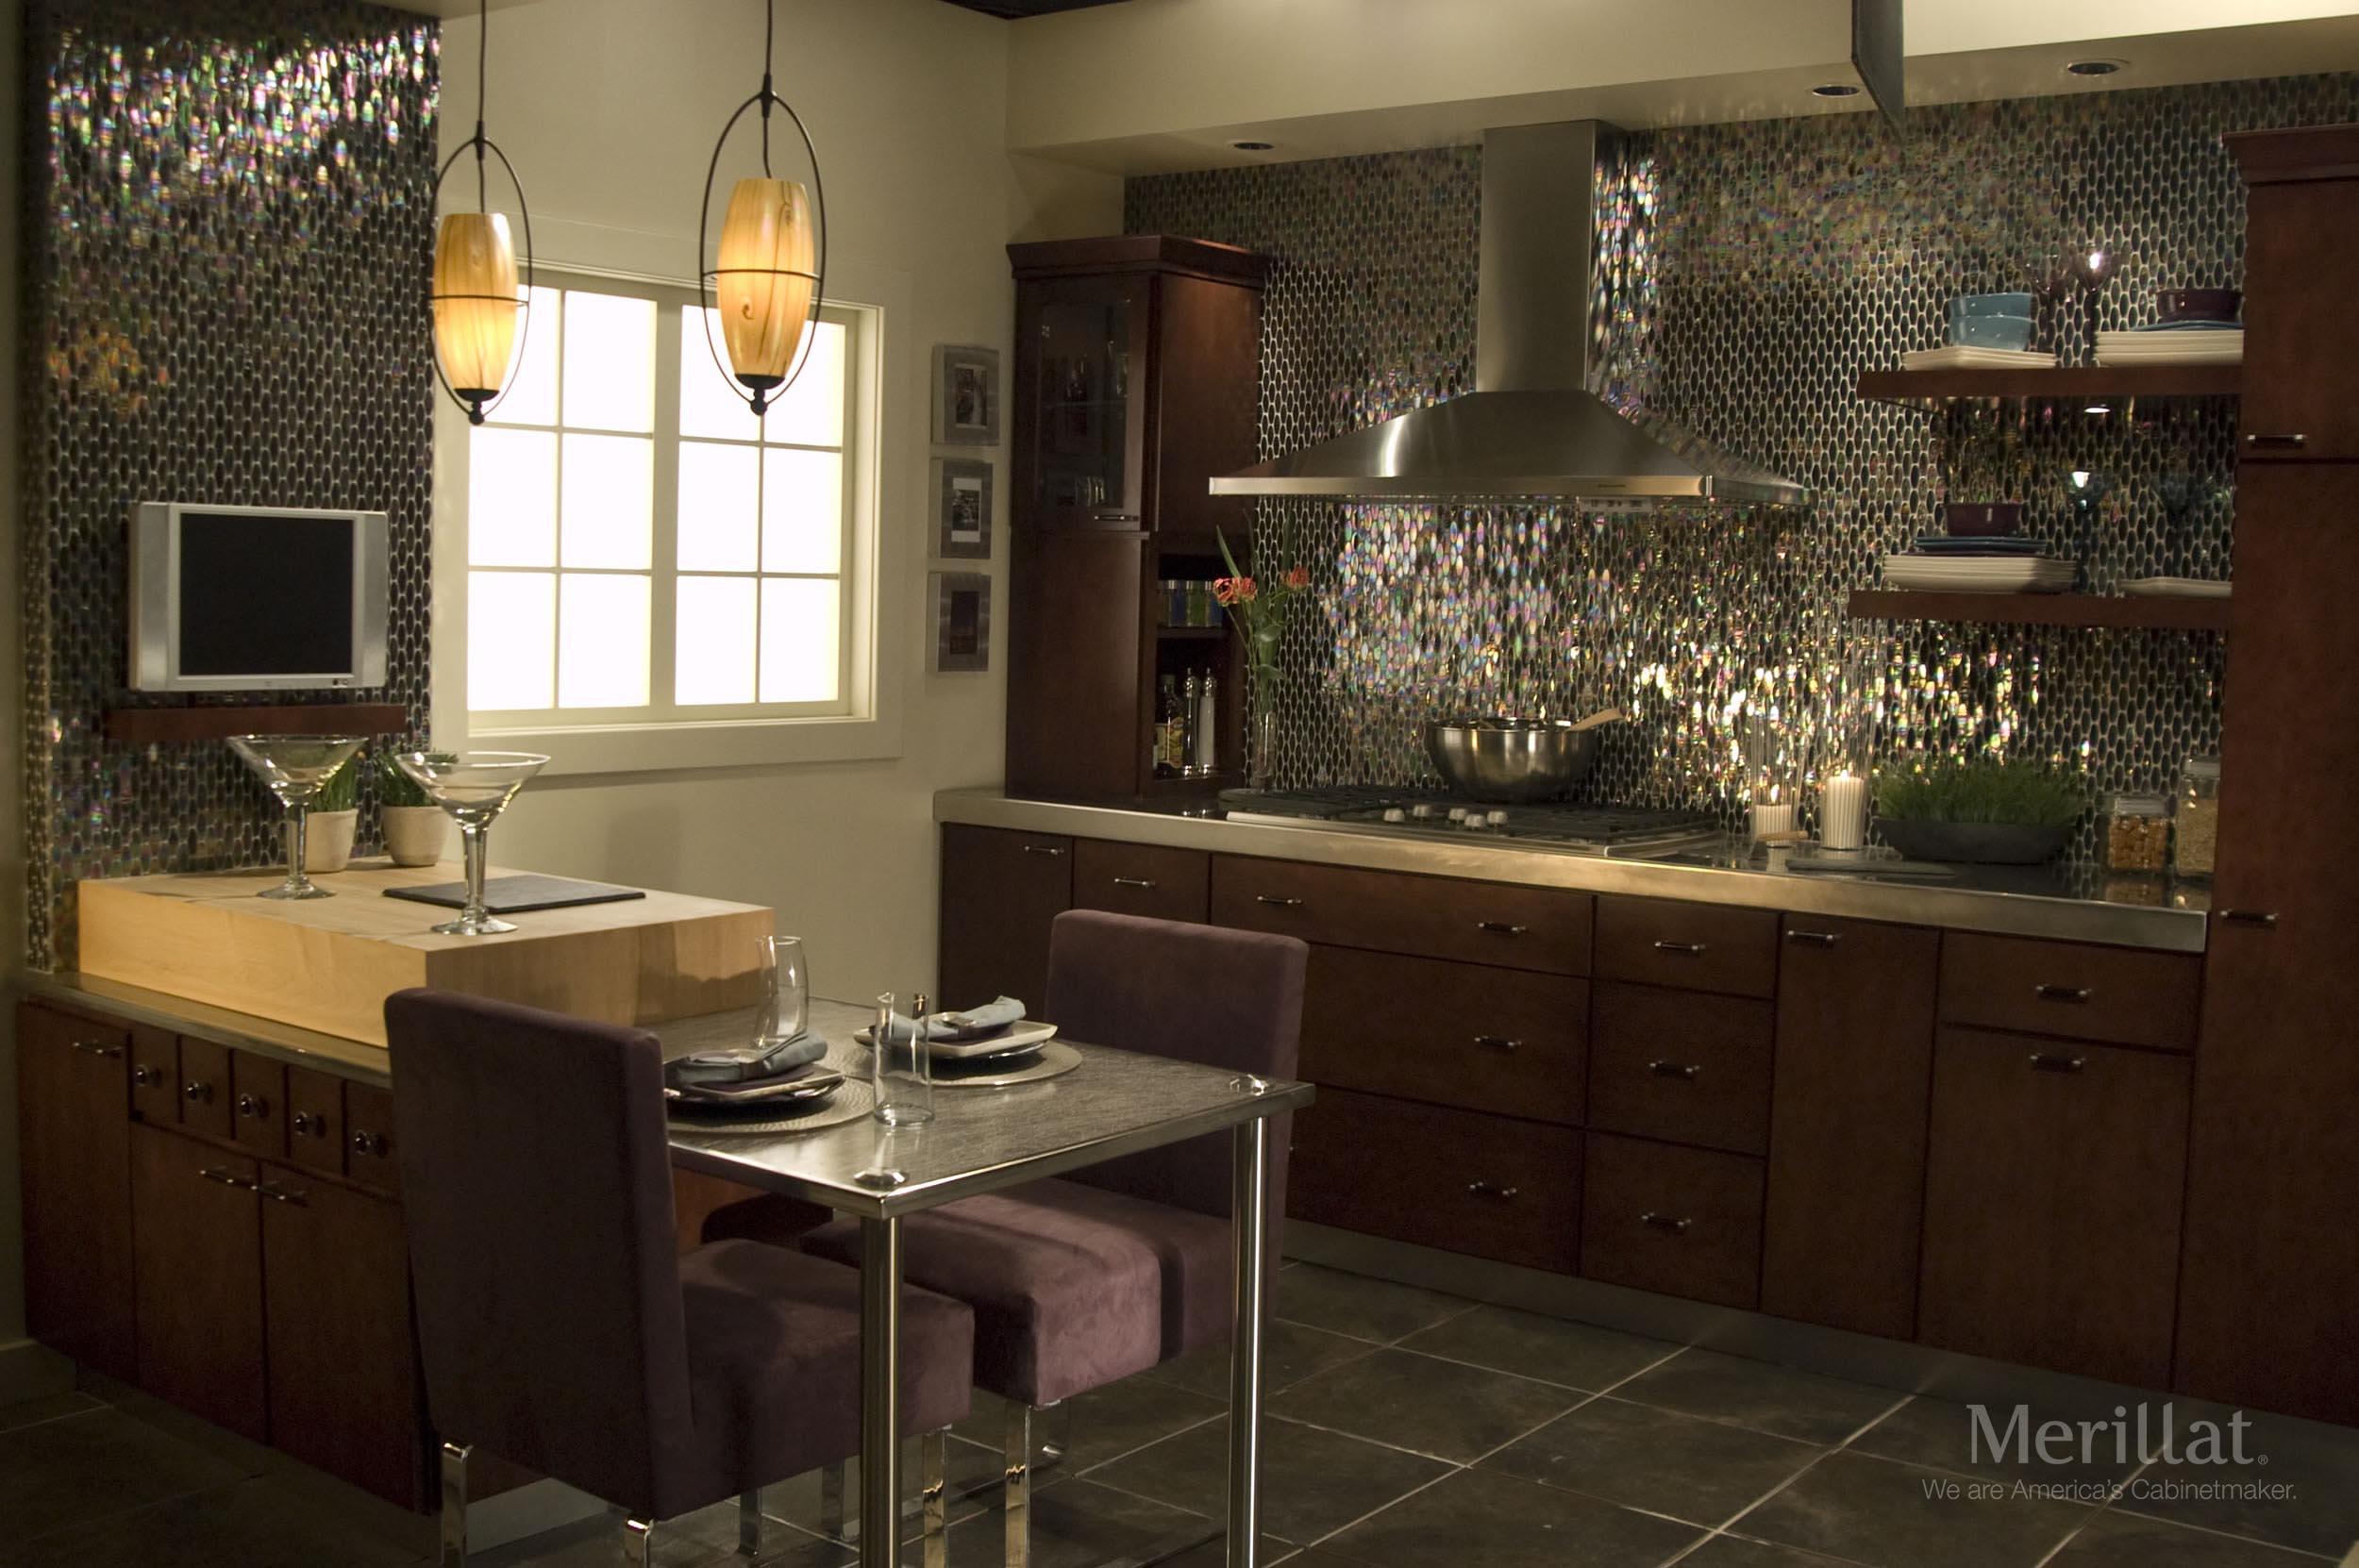 download room image - Merillat Classic Kitchen Cabinets